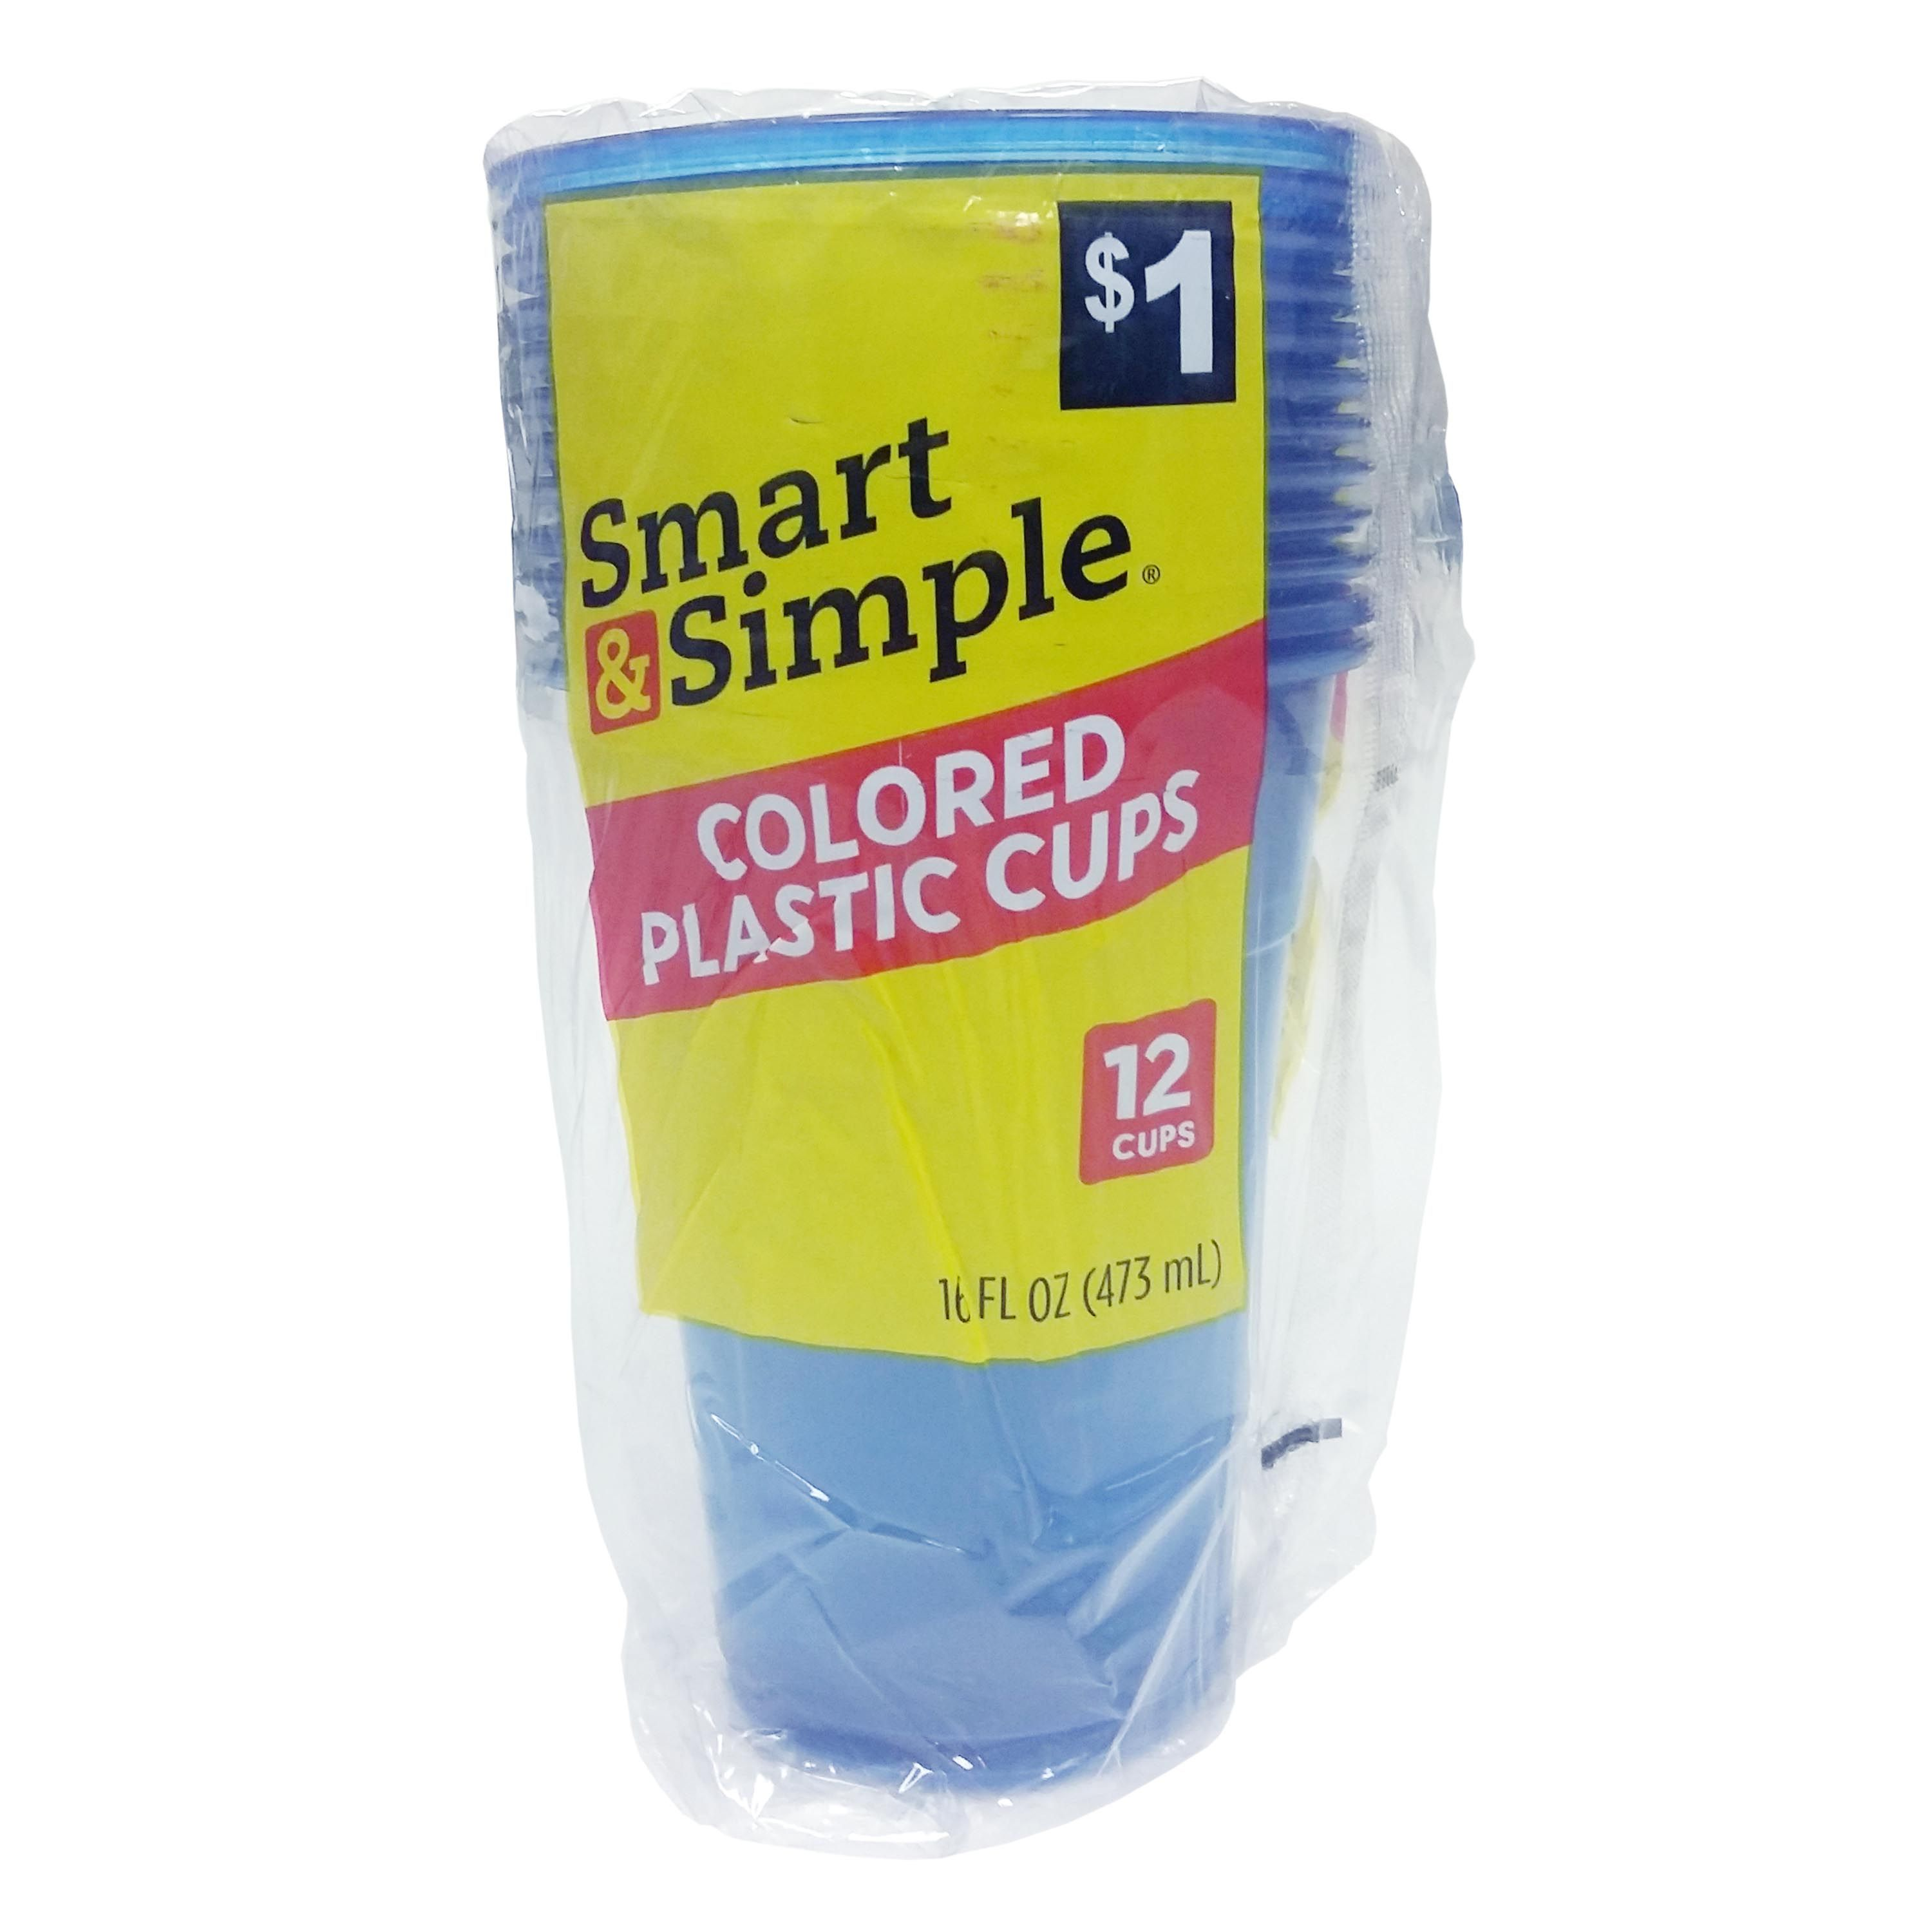 Smart & Simple - Colored Plastic Cups, 12 Ct.